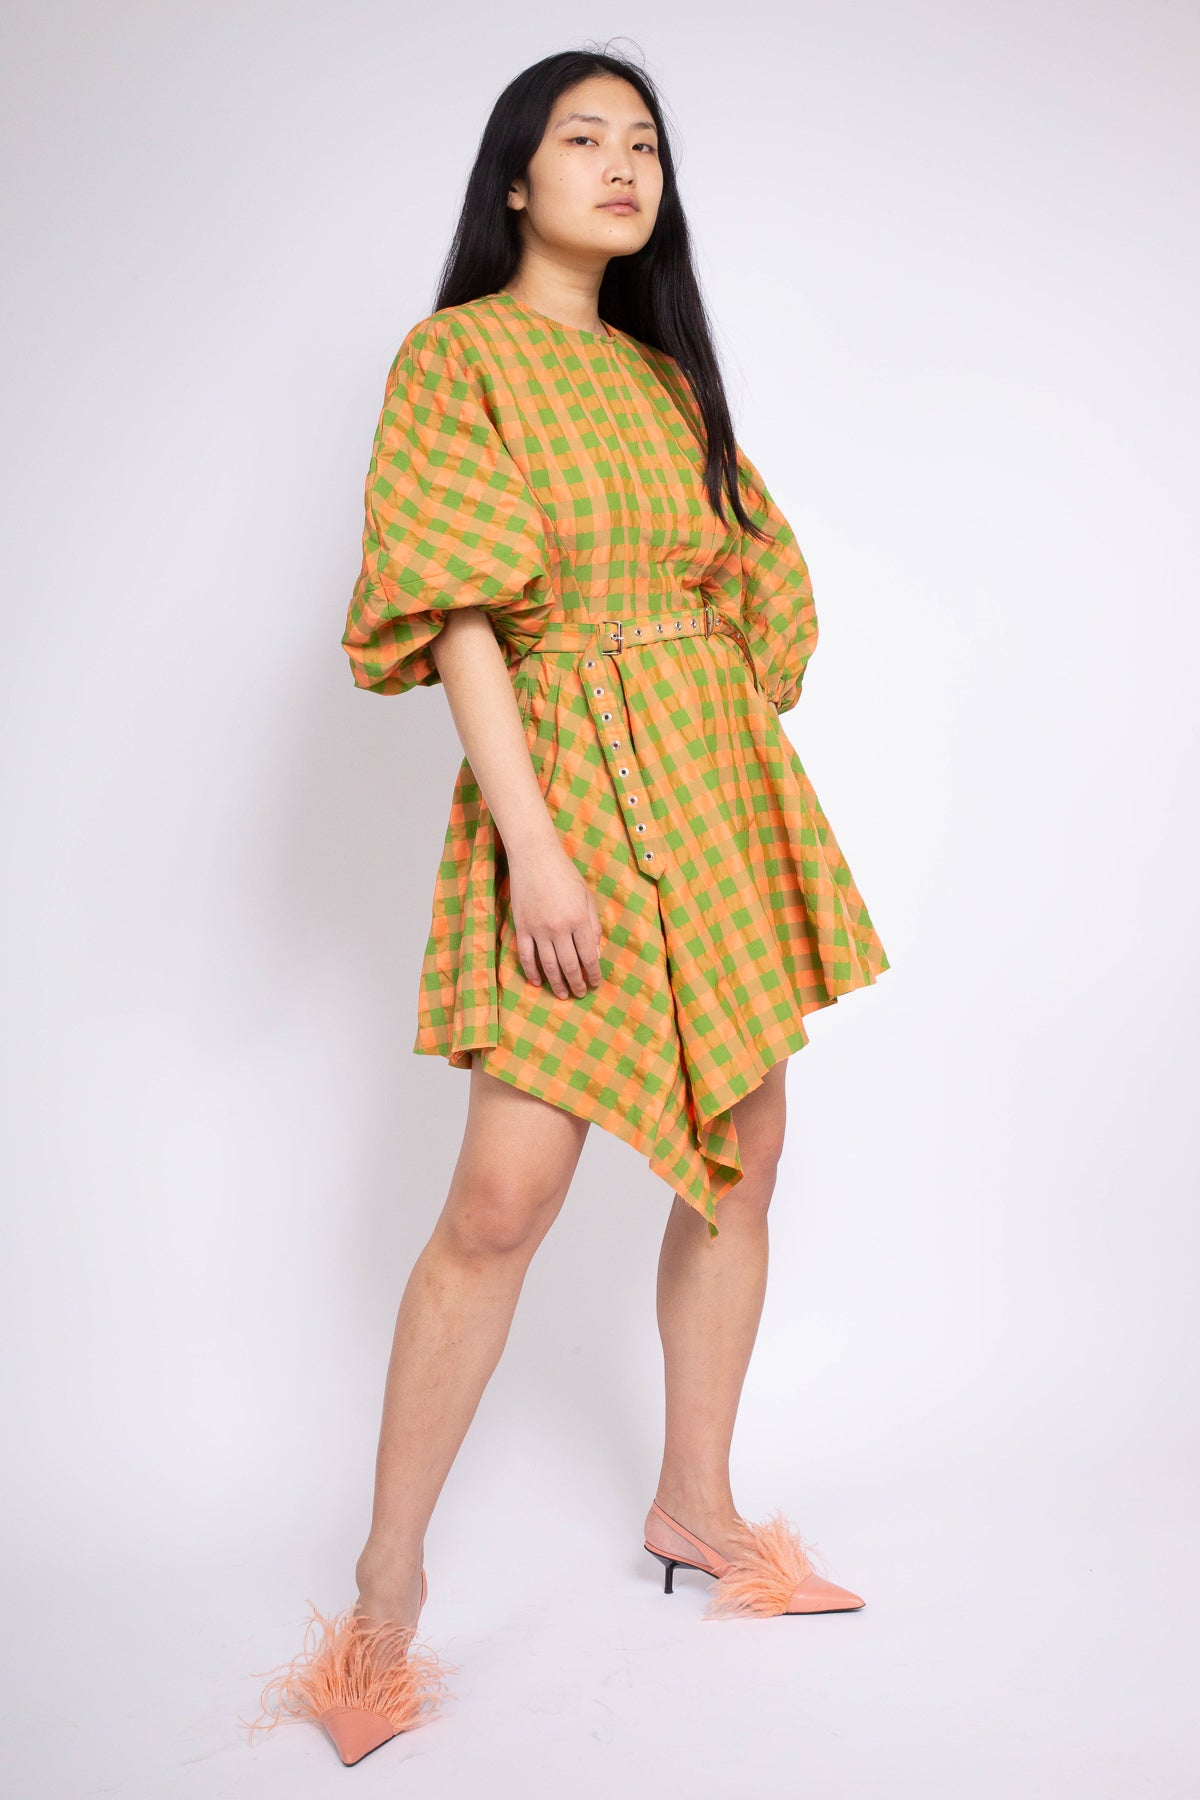 BALLOON SLEEVE AYSMMETRIC HEM DRESS IN PINK AND GREEN - marques-almeida-dev